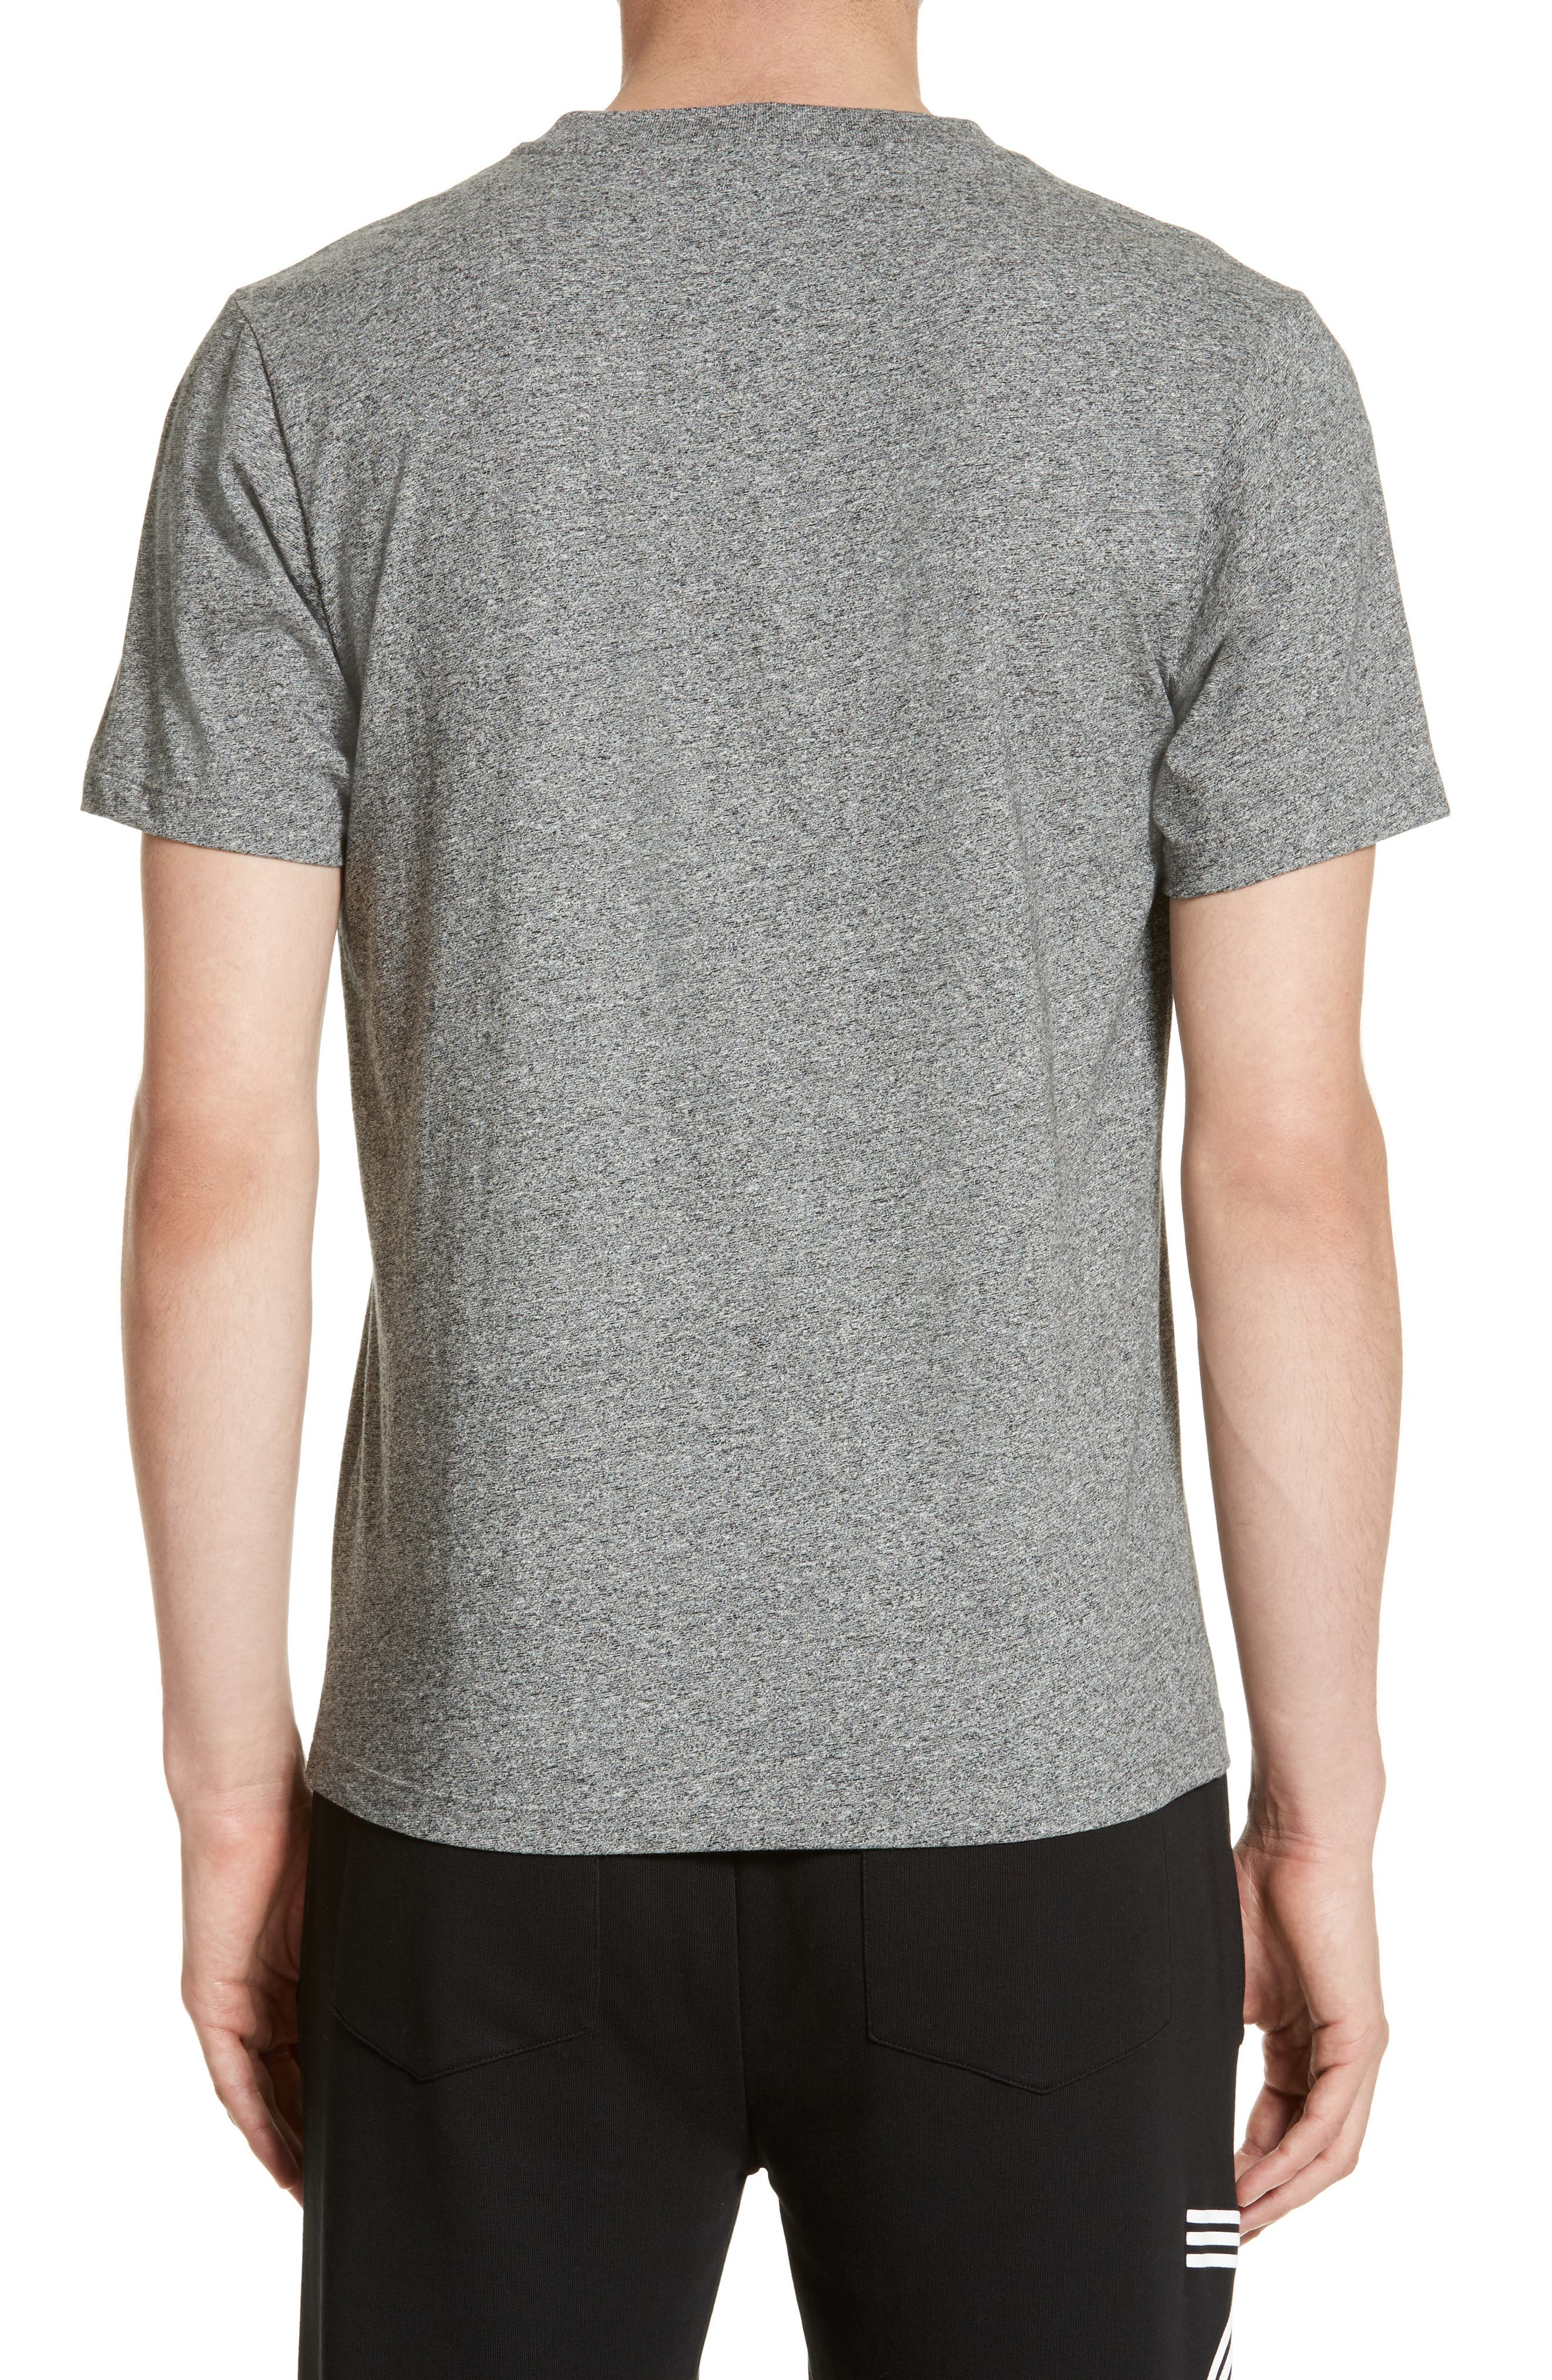 Embroidered Eye T-Shirt,                             Alternate thumbnail 2, color,                             Antracite